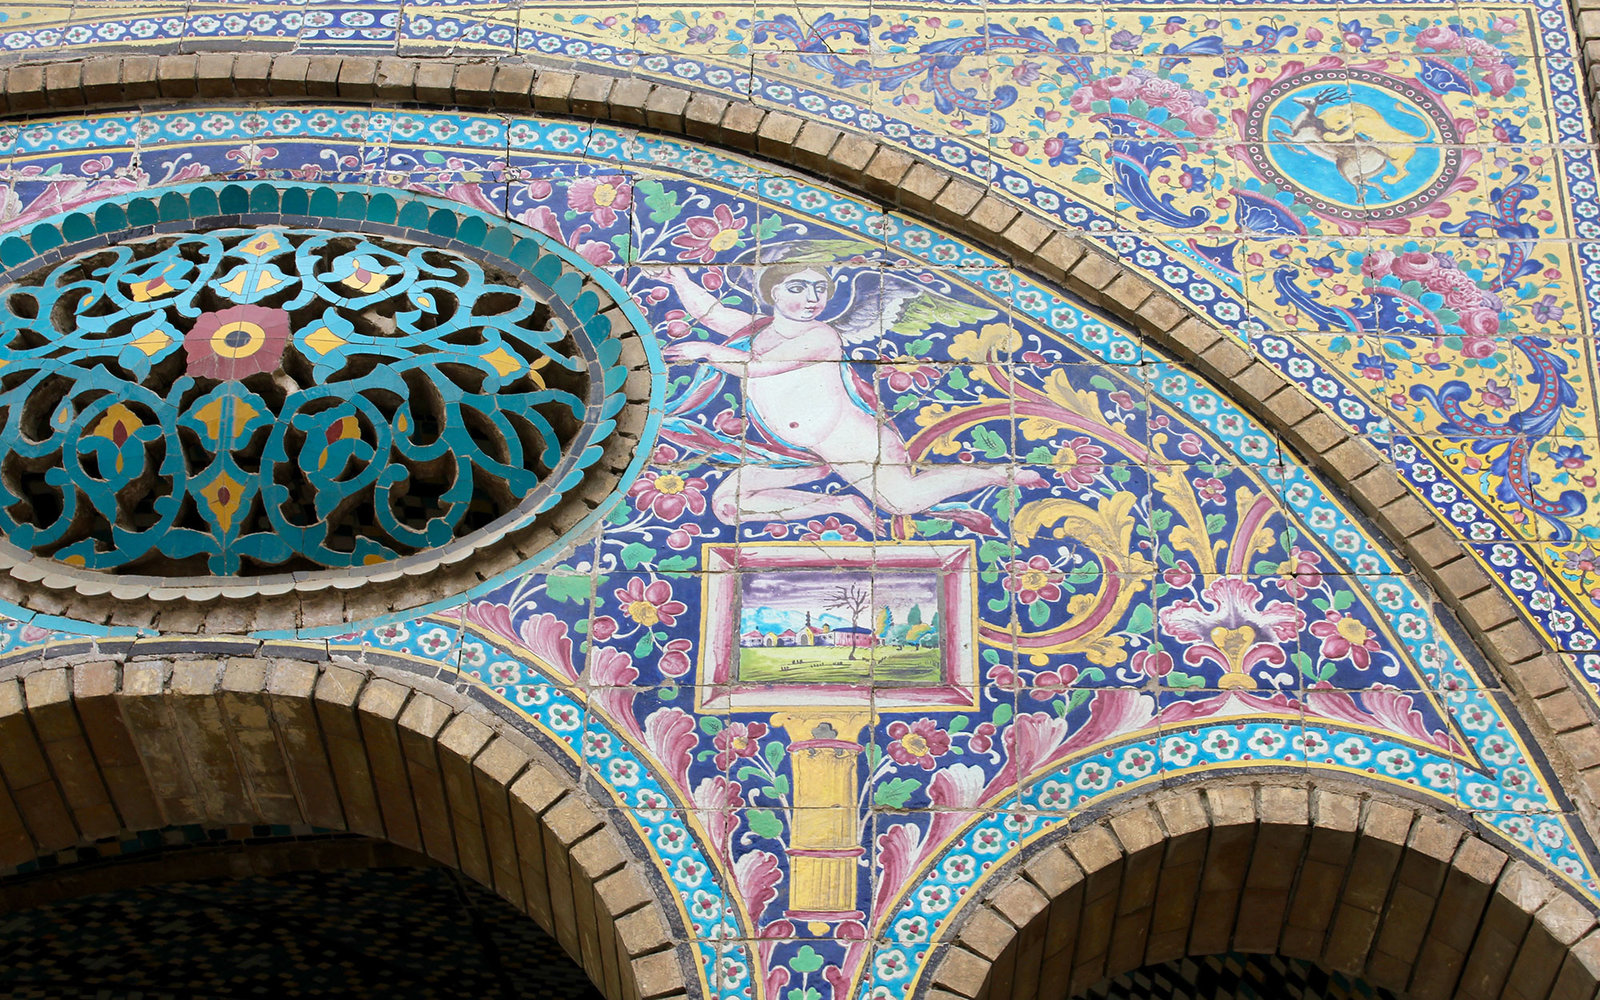 A Visual Tour of Iran's Tilework